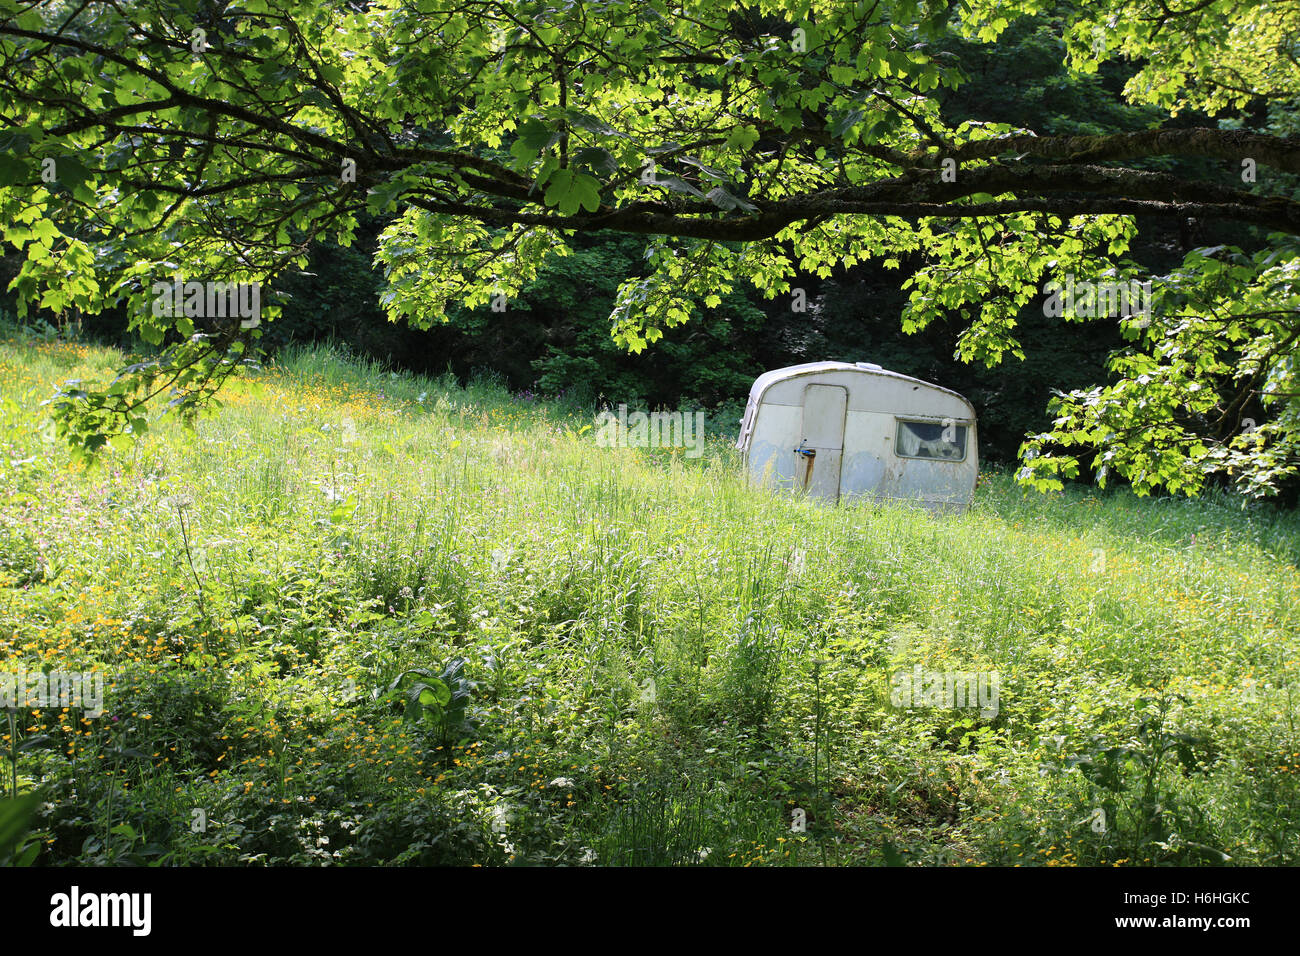 A tiny disused caravan in an idyllic setting - Stock Image